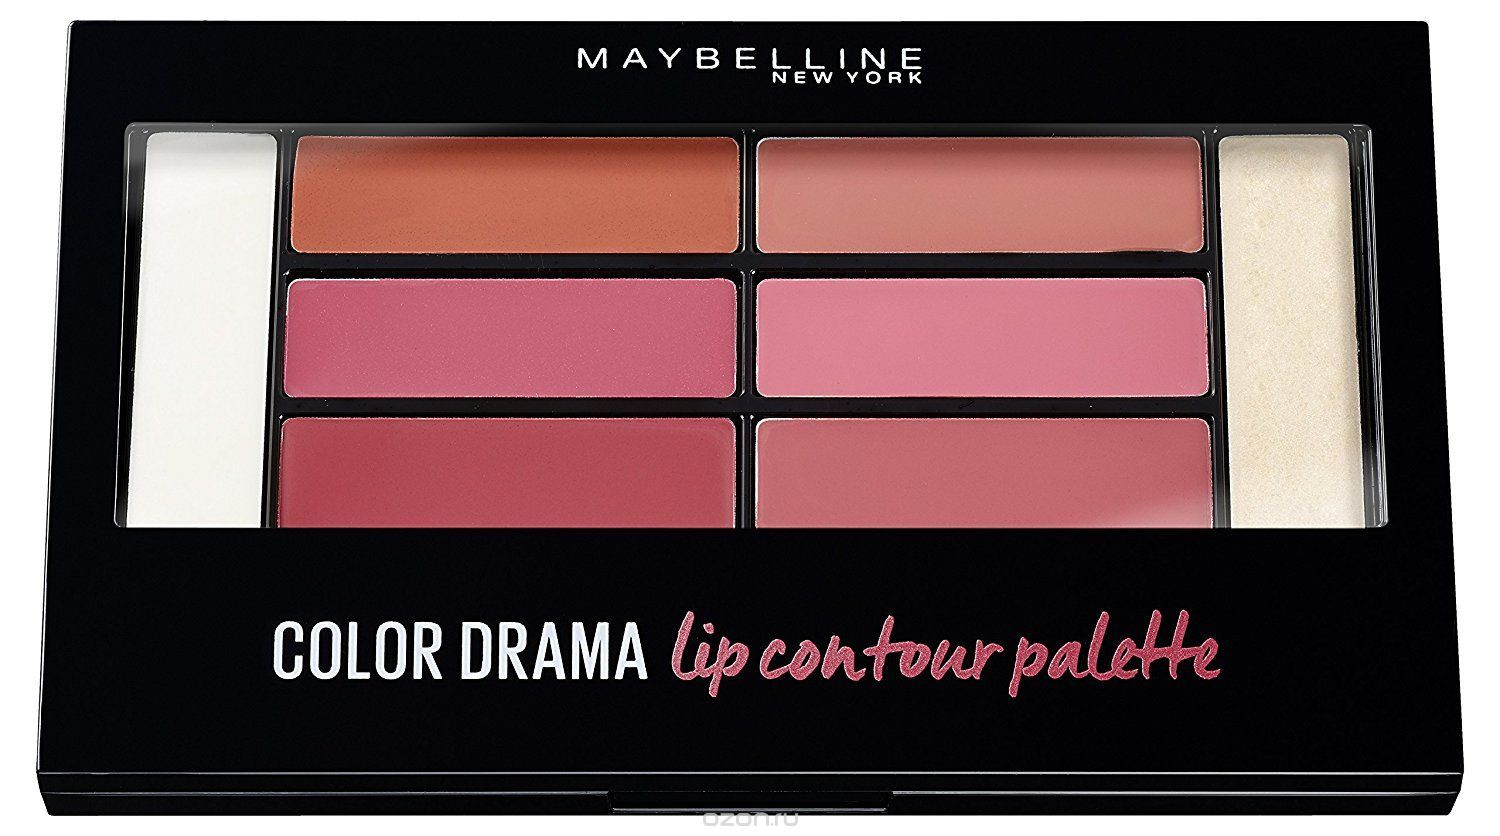 Губная помада Maybelline New York MBL Color Drama 4г Lip Contour Palette Blushed, нюдово-розовый